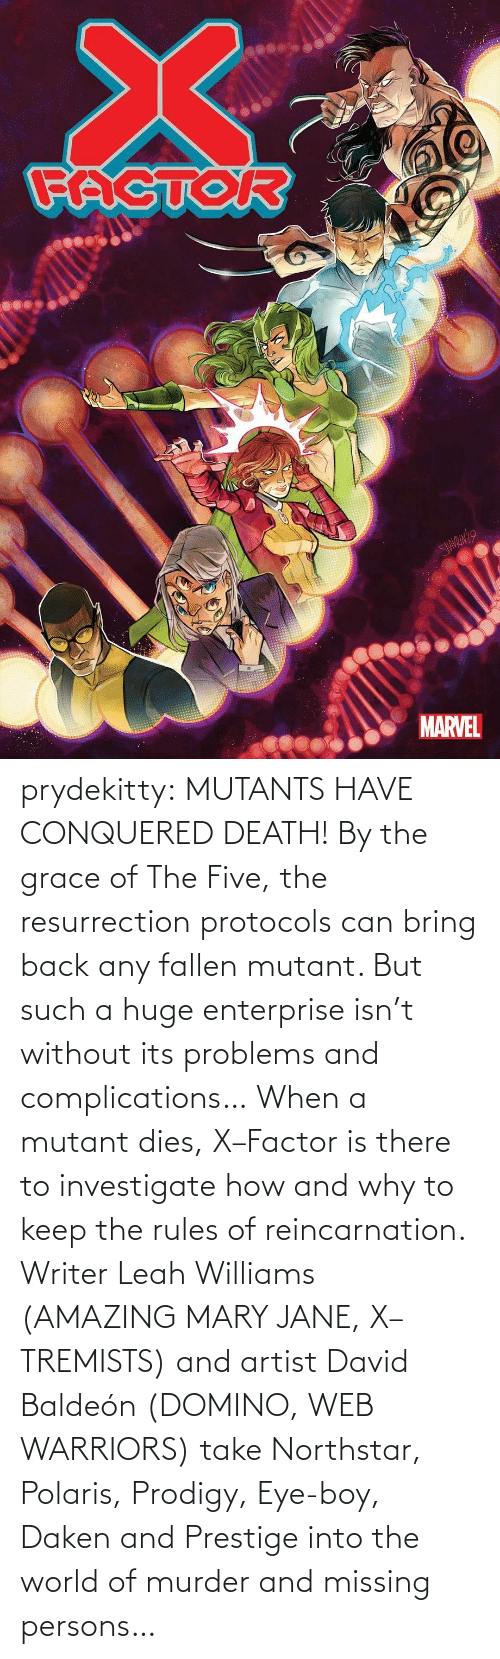 huge: prydekitty:  MUTANTS HAVE CONQUERED DEATH! By the grace of The Five, the resurrection protocols can bring back any fallen mutant. But such a huge enterprise isn't without its problems and complications… When a mutant dies, X–Factor is there to investigate how and why to keep the rules of reincarnation. Writer Leah Williams (AMAZING MARY JANE, X–TREMISTS) and artist David Baldeón (DOMINO, WEB WARRIORS) take Northstar, Polaris, Prodigy, Eye-boy, Daken and Prestige into the world of murder and missing persons…